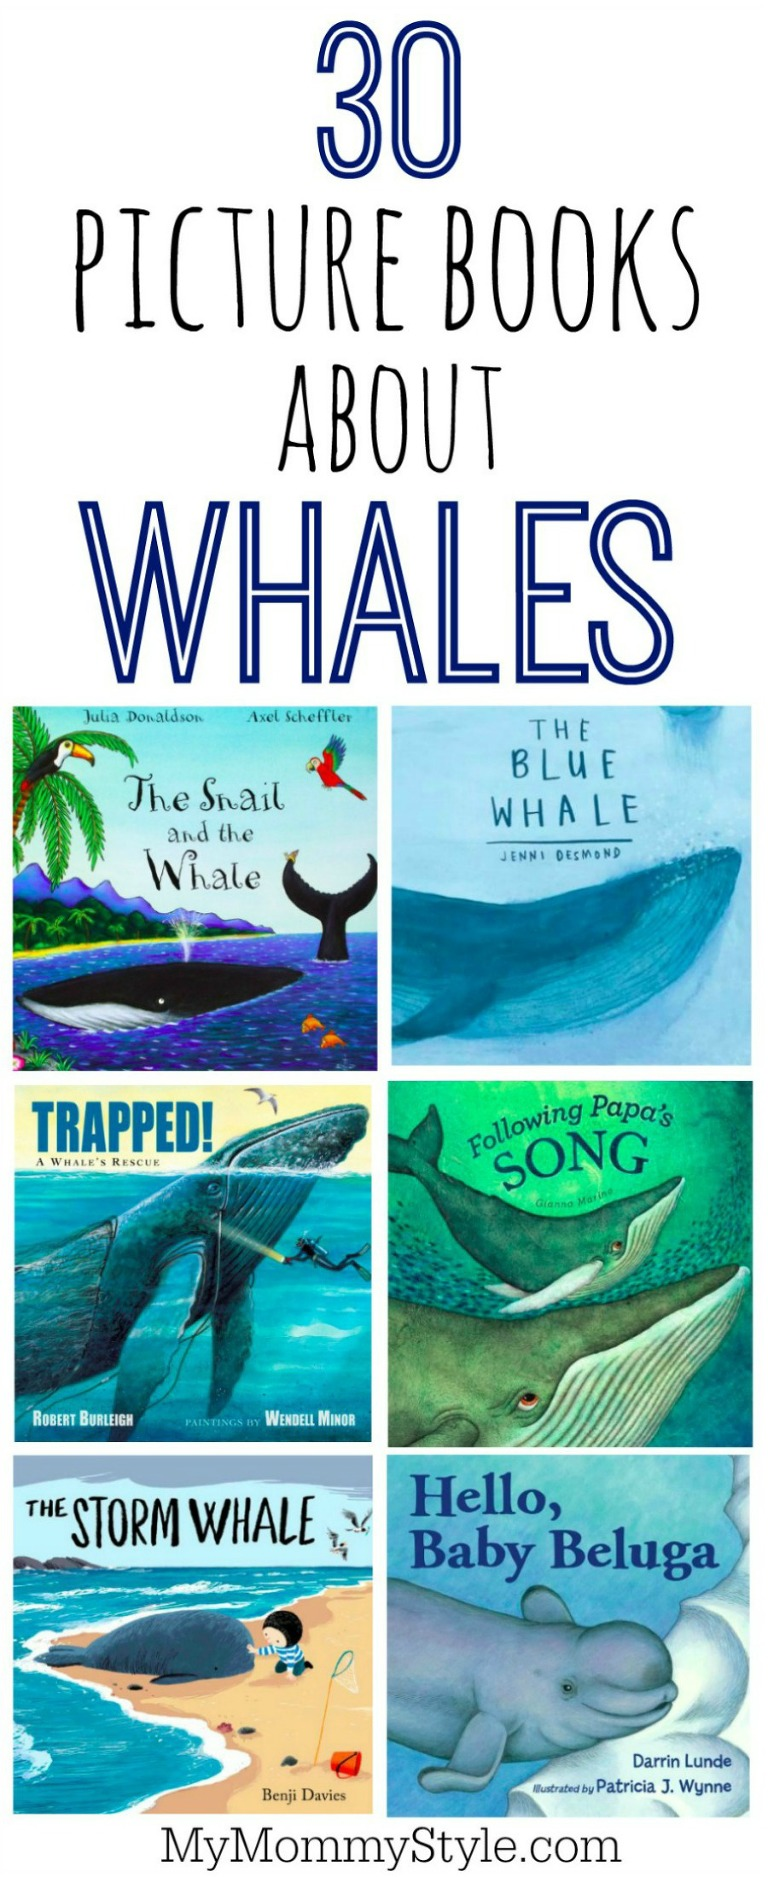 picture books about whales for preschoolers and young kids. Perfect books to read for under the sea theme at school.